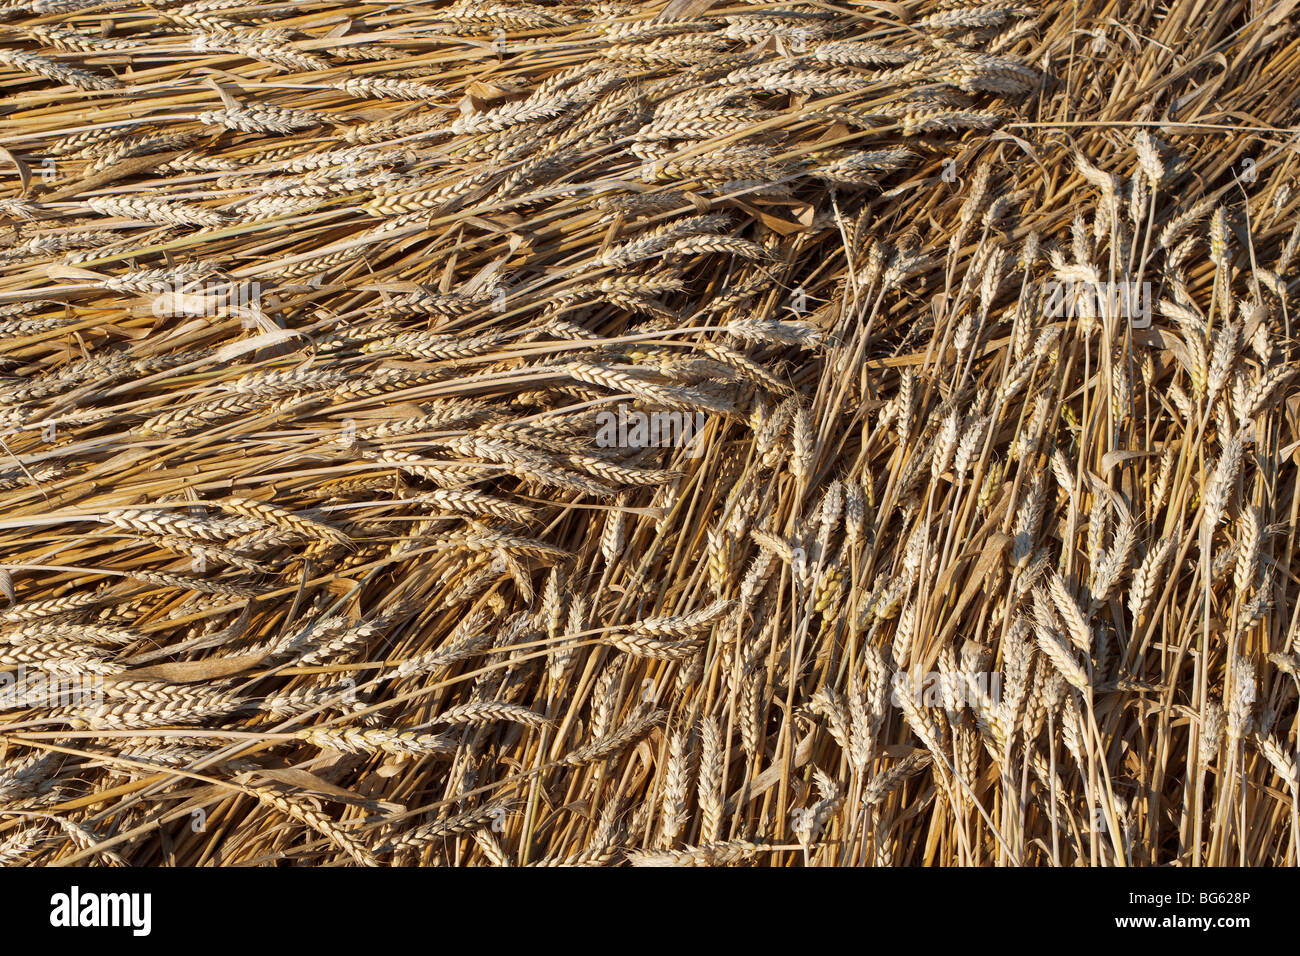 grain after storm - Stock Image